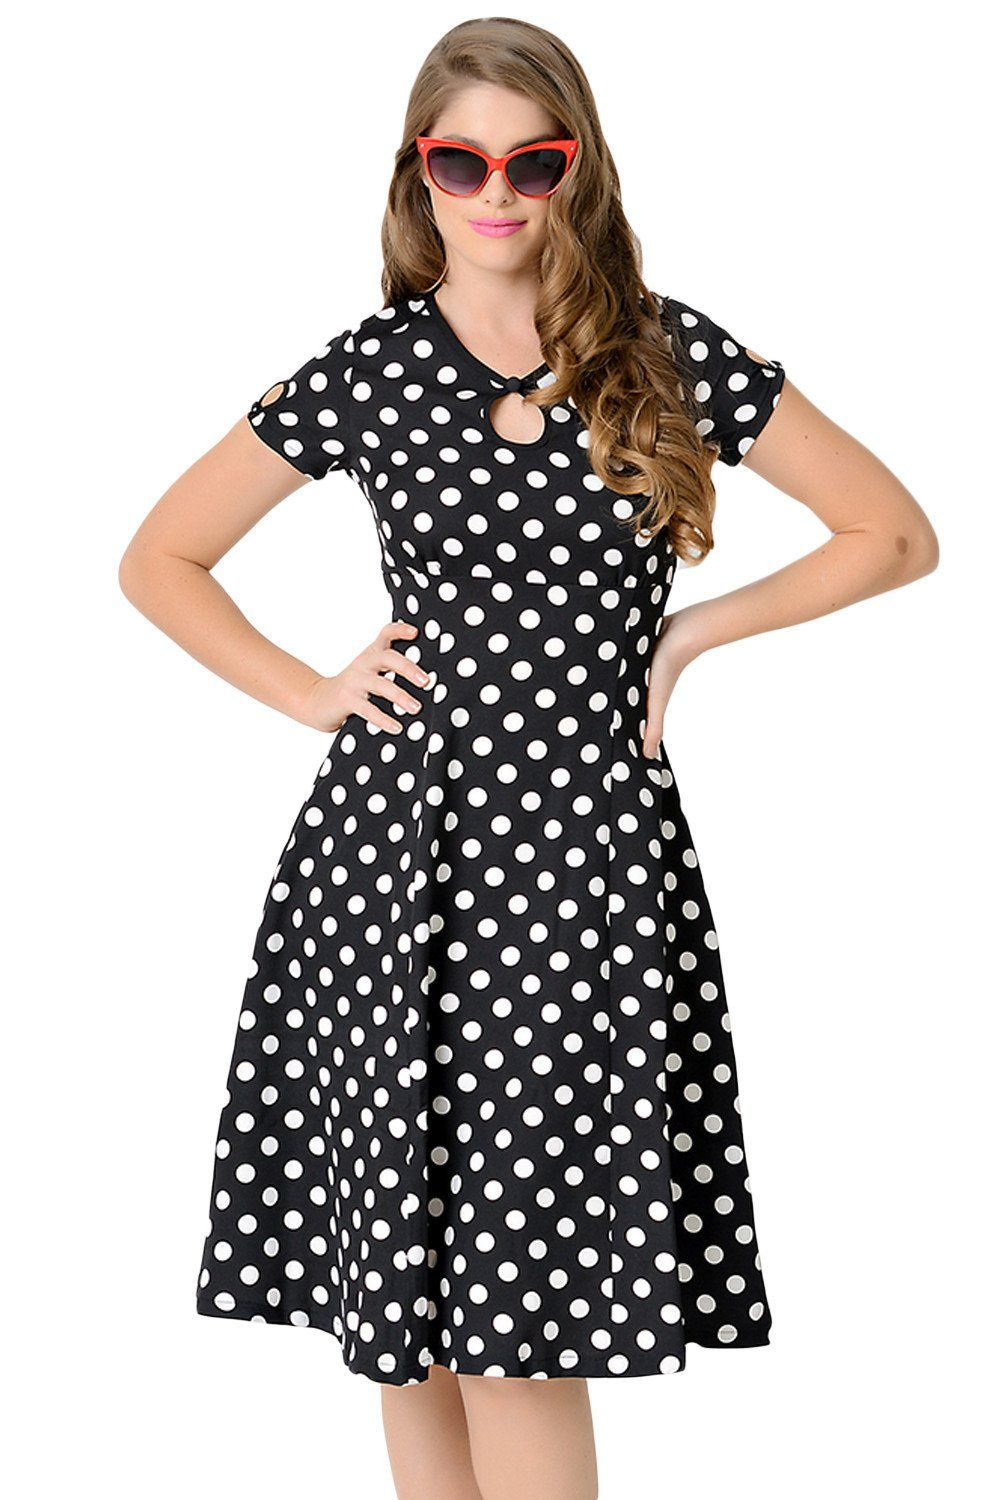 Vintage Robes Noir   Blanc Dotted Cap Sleeve Robe Trapeze Pas Cher  www.modebuy.com  Modebuy  Modebuy  CommeMontre 1aa13af4dfd3